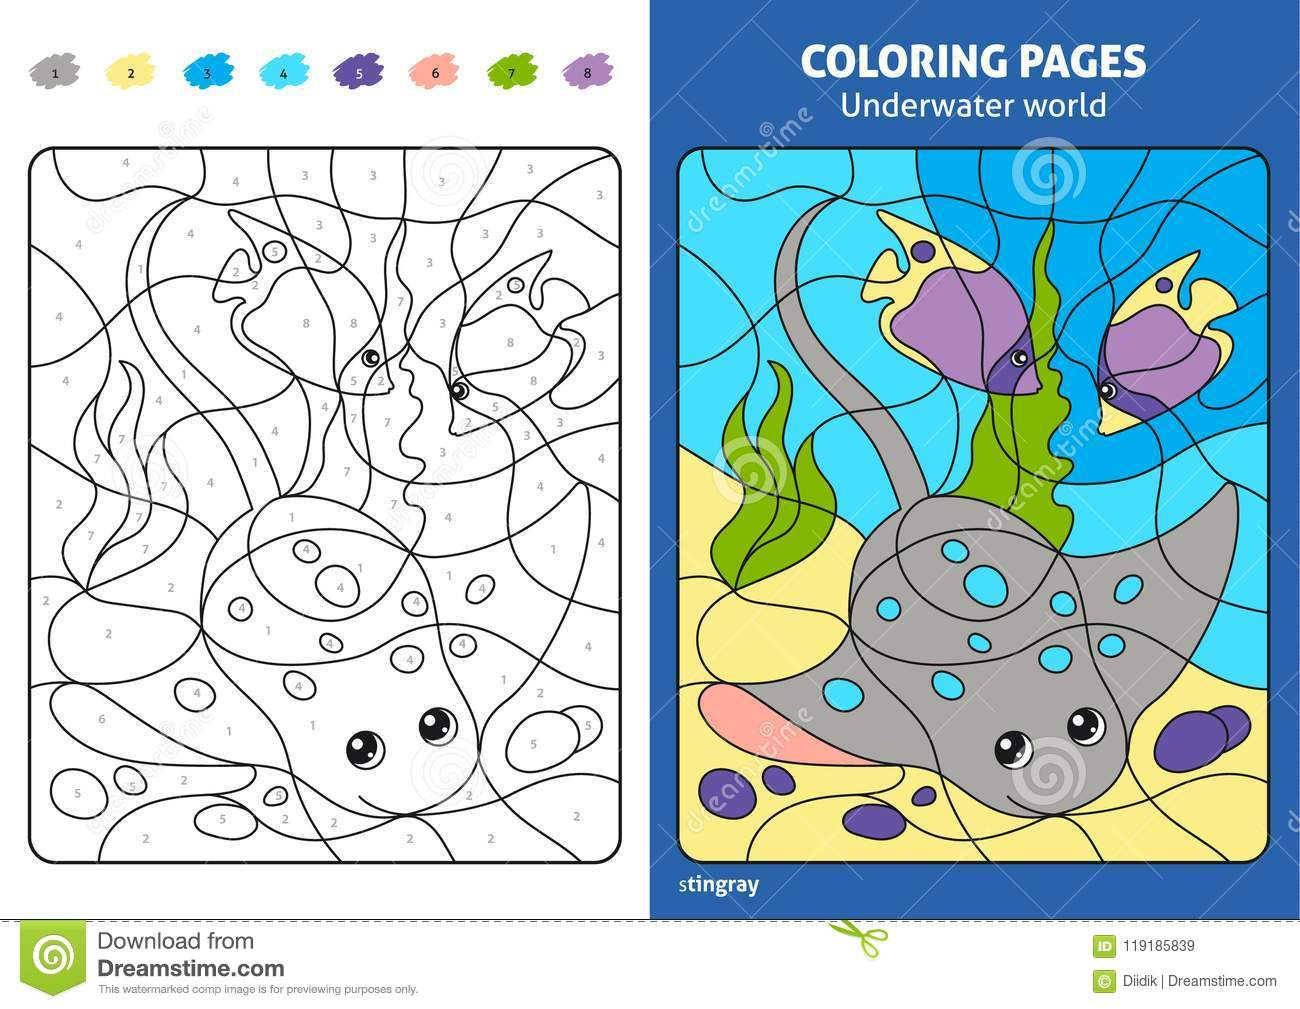 Underwater World Coloring Page For Kids, Stingray. Stock Vector ...